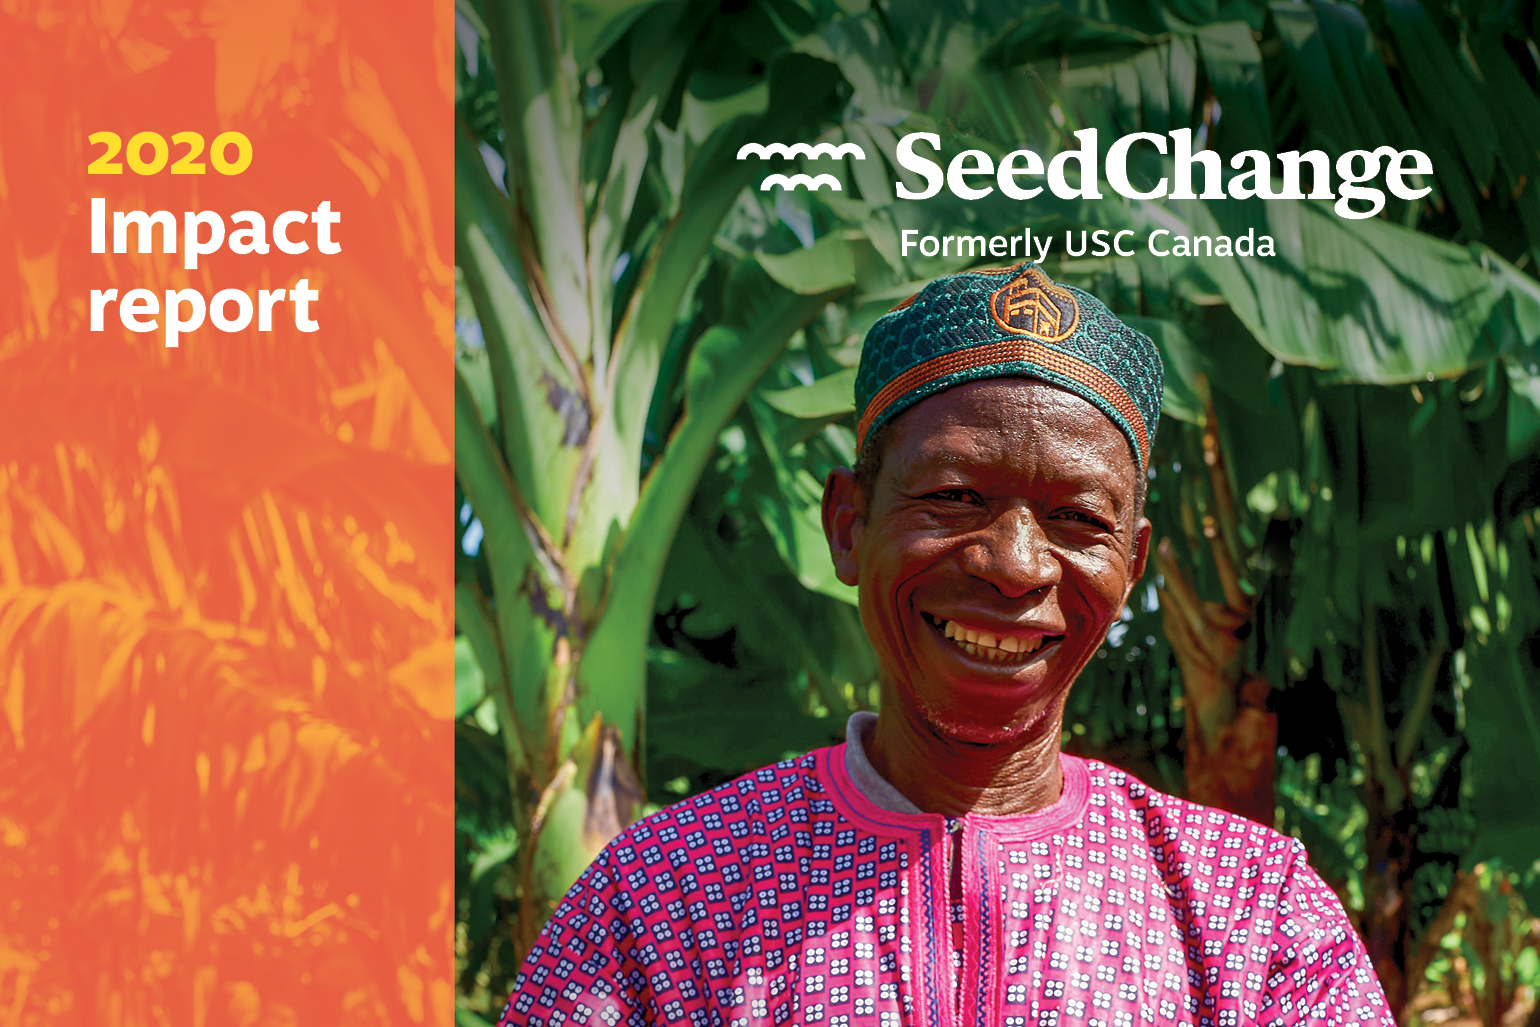 2020 annual impact report cover, featuring a man smiling widely toward the camera.